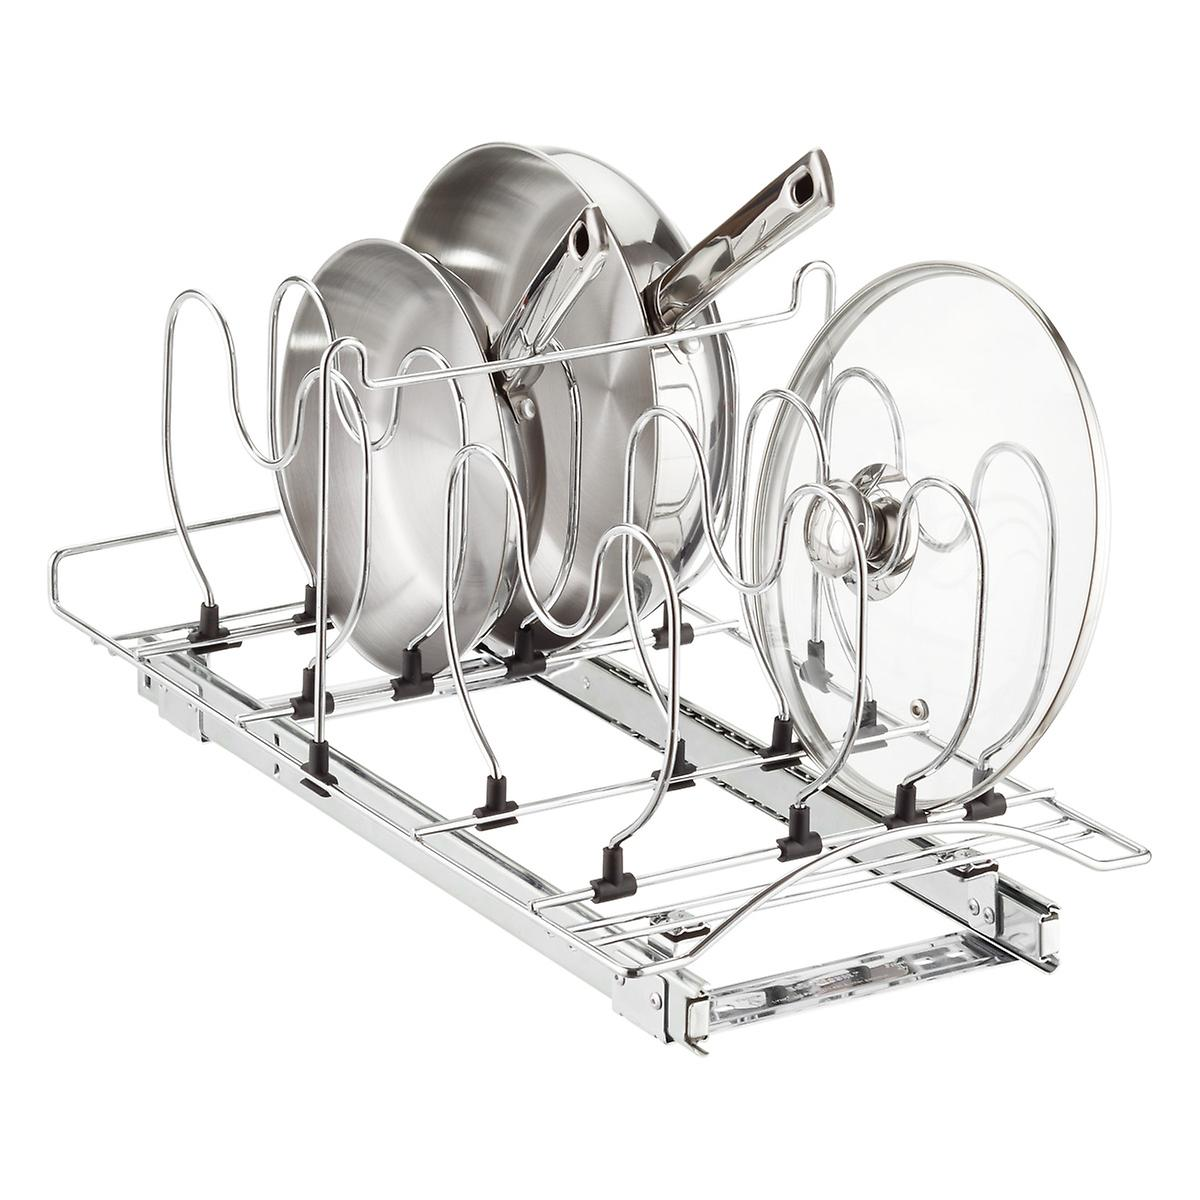 Lynk roll out under sink cabinet organizer pull out two tier sliding - Lynk 21 Chrome Pull Out Cookware Organizer